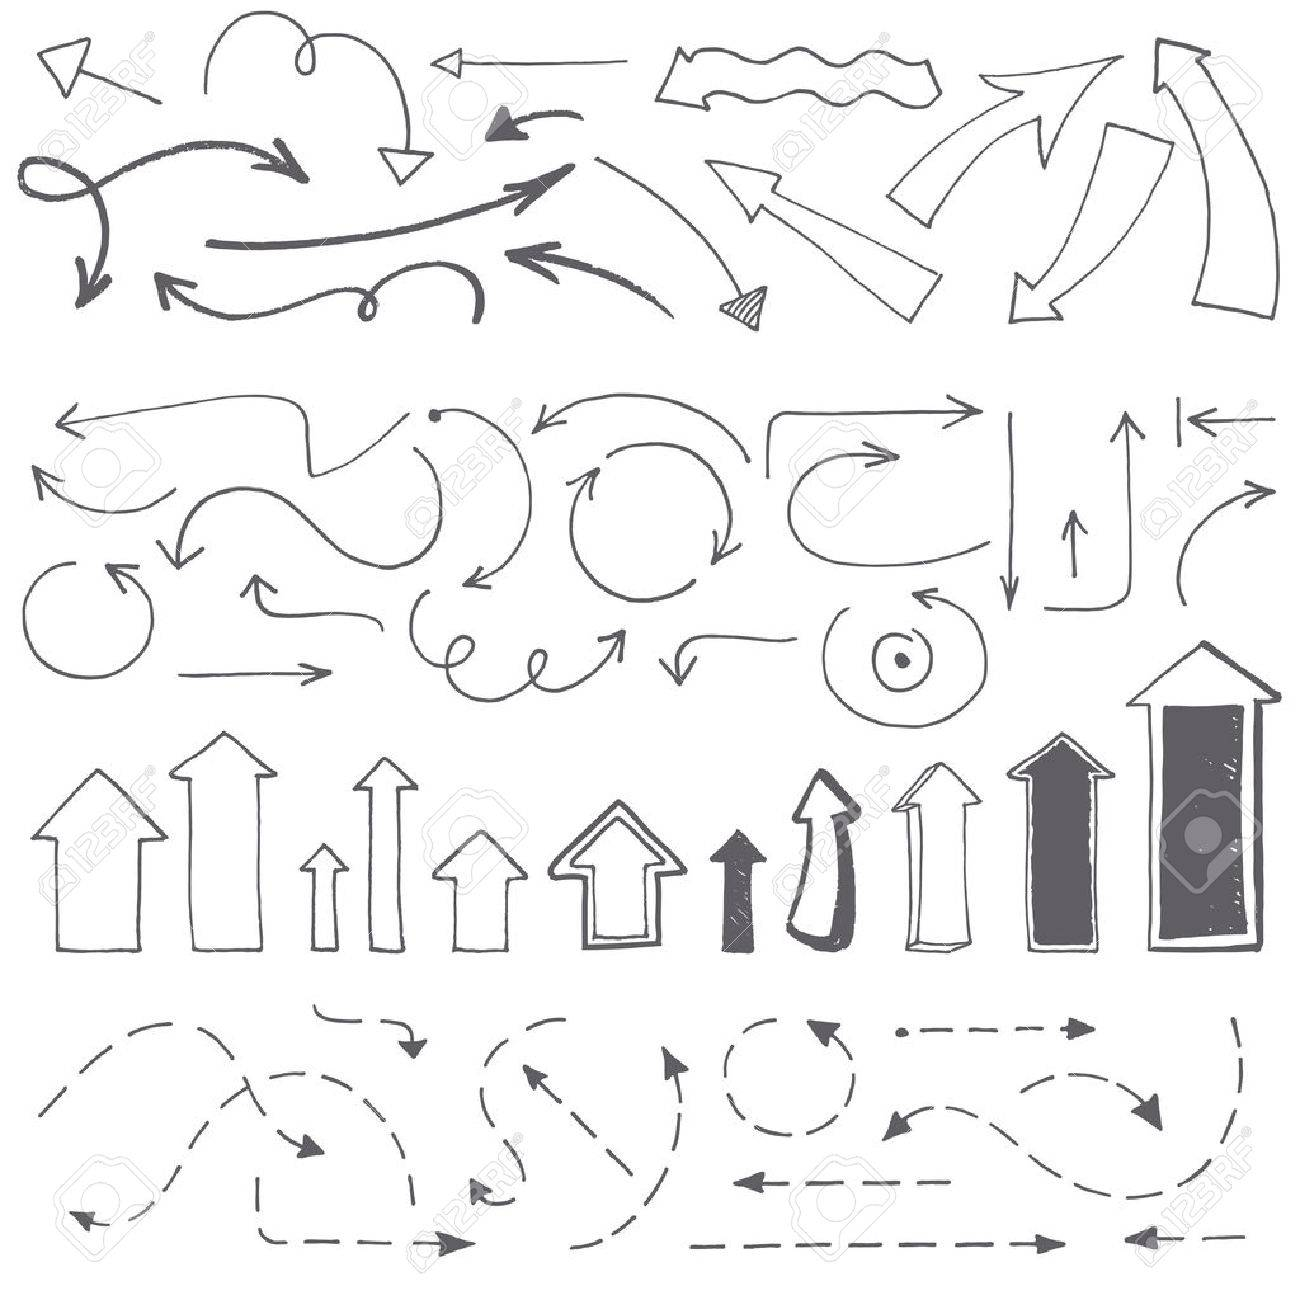 Hand drawn arrows set. Vector illustration. Collection of arrowheads - rough jagged edges. - 50179127